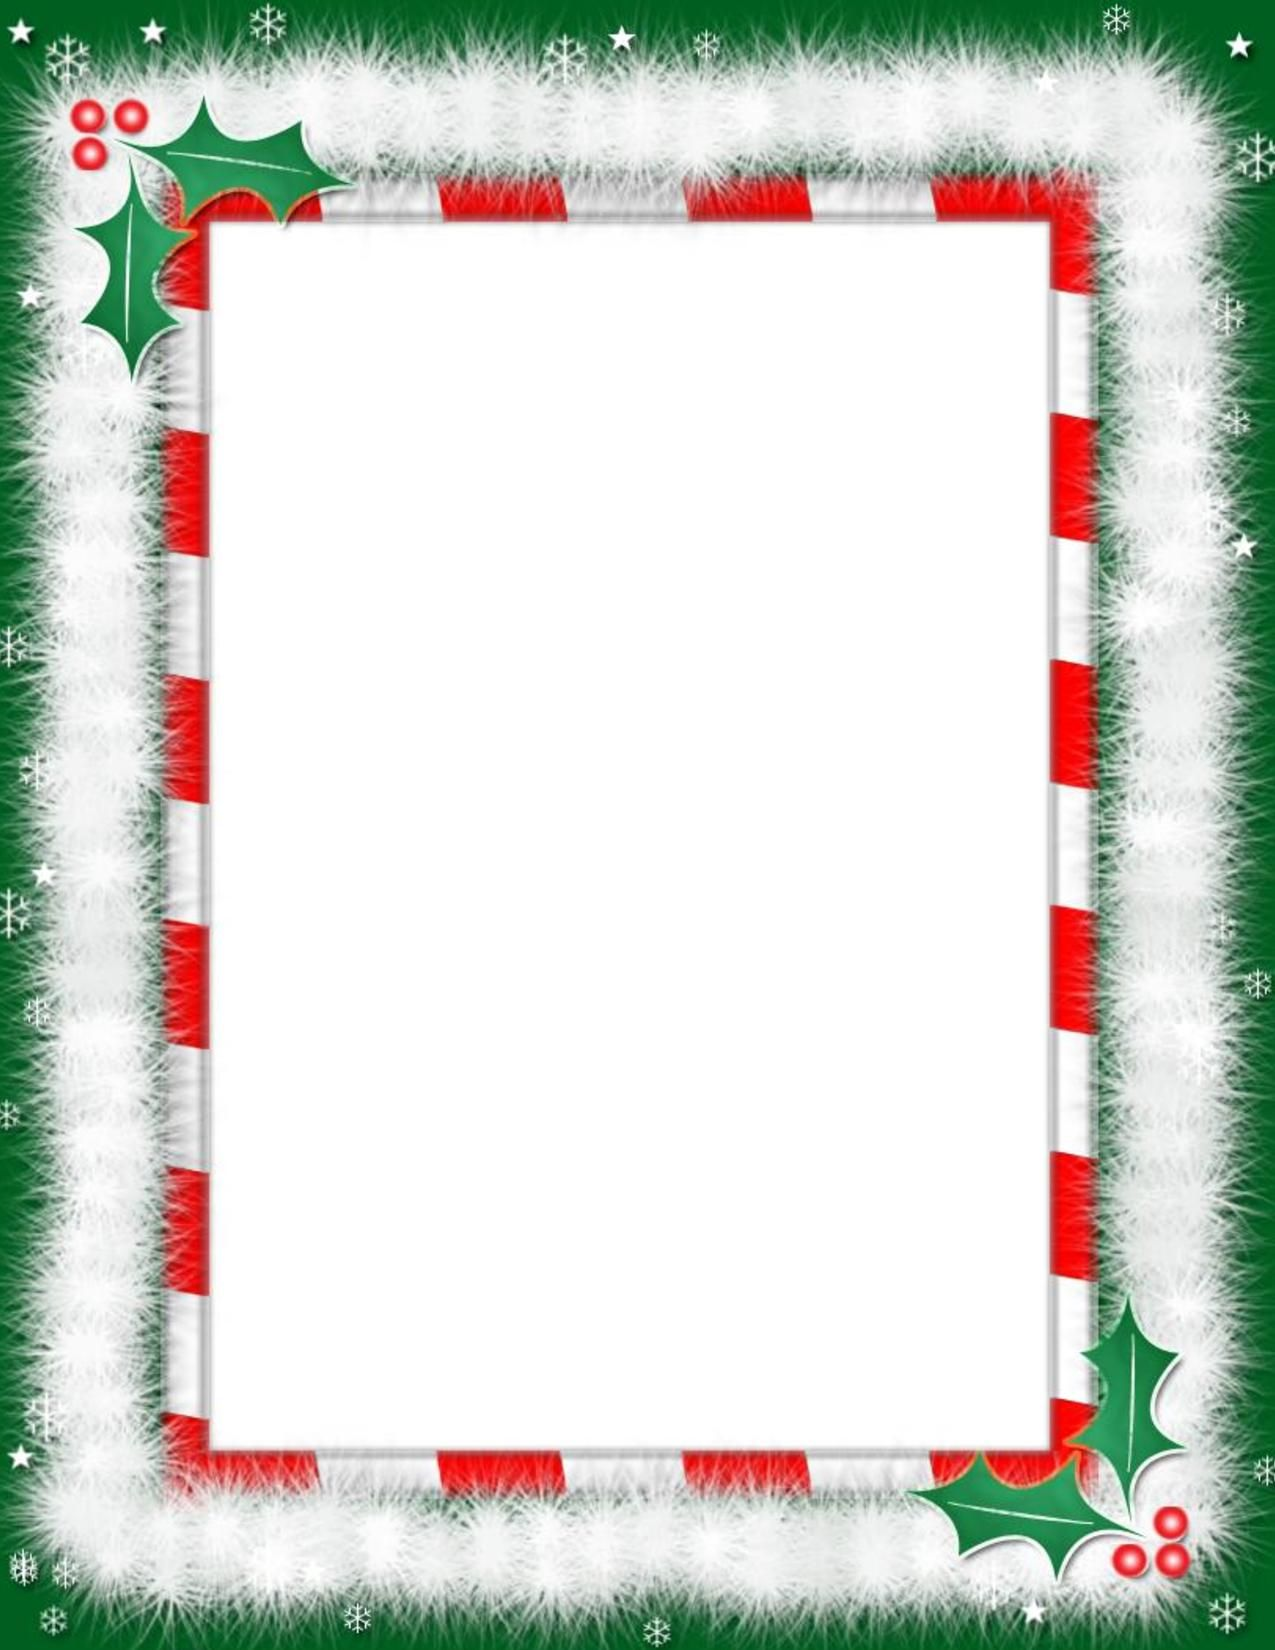 Heart Word Borders Templates Free | ... Borders For Word Documents  Christmas Borders To  Microsoft Word Page Border Templates